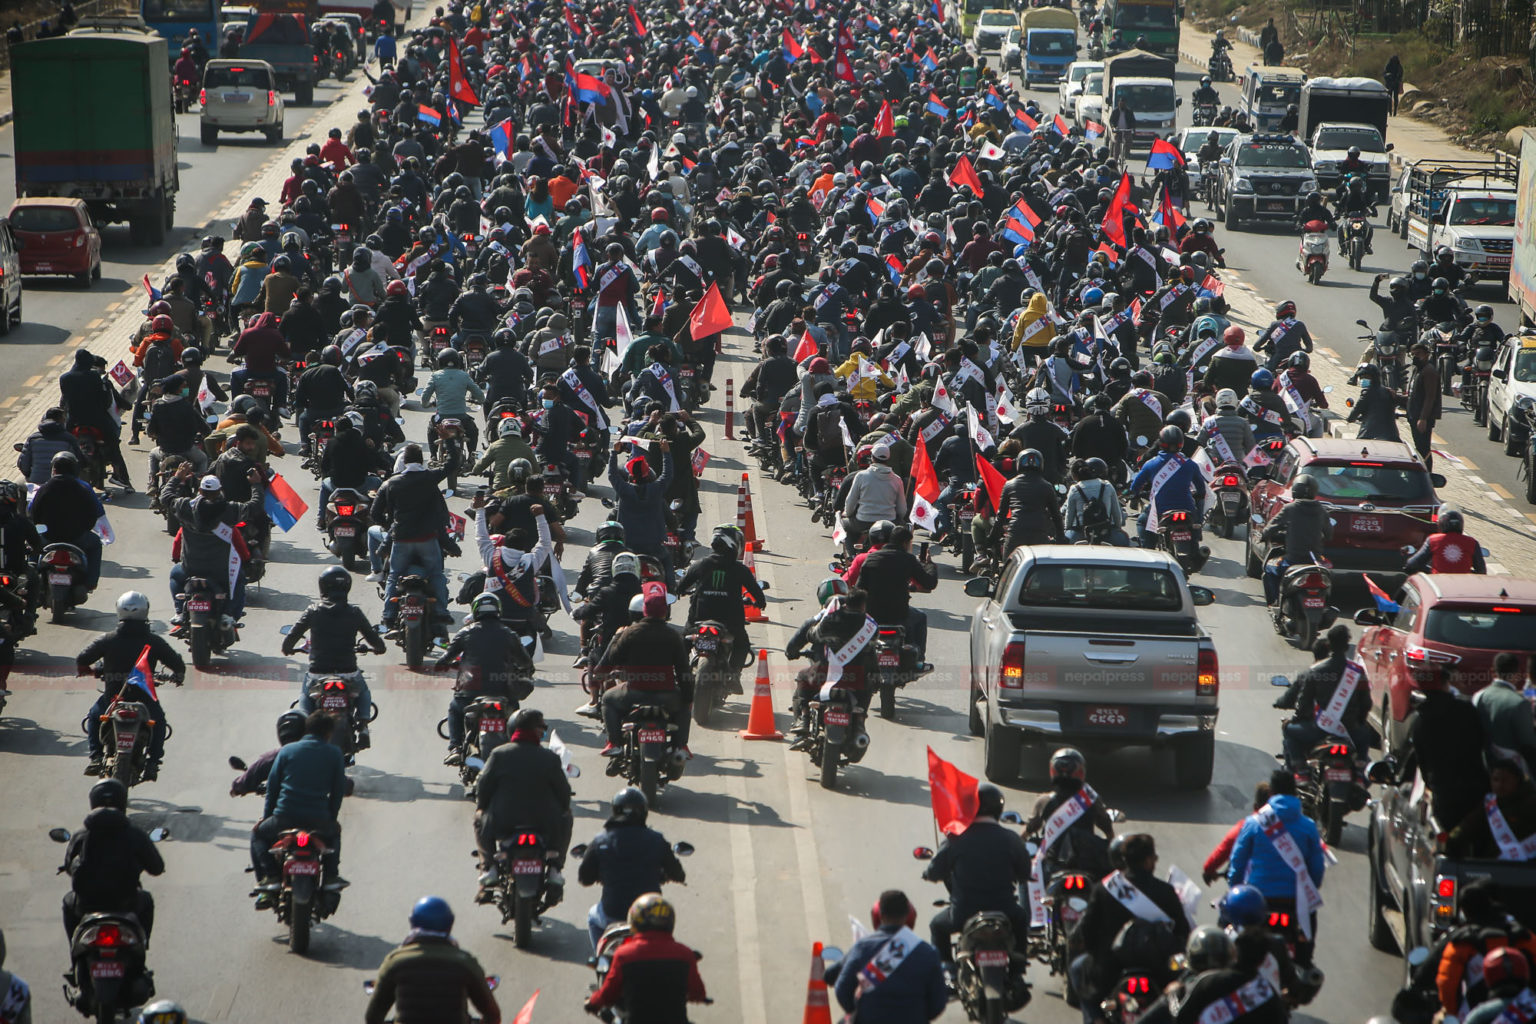 Motorcycle rally by Pro-Oli youth and students in Kathmandu